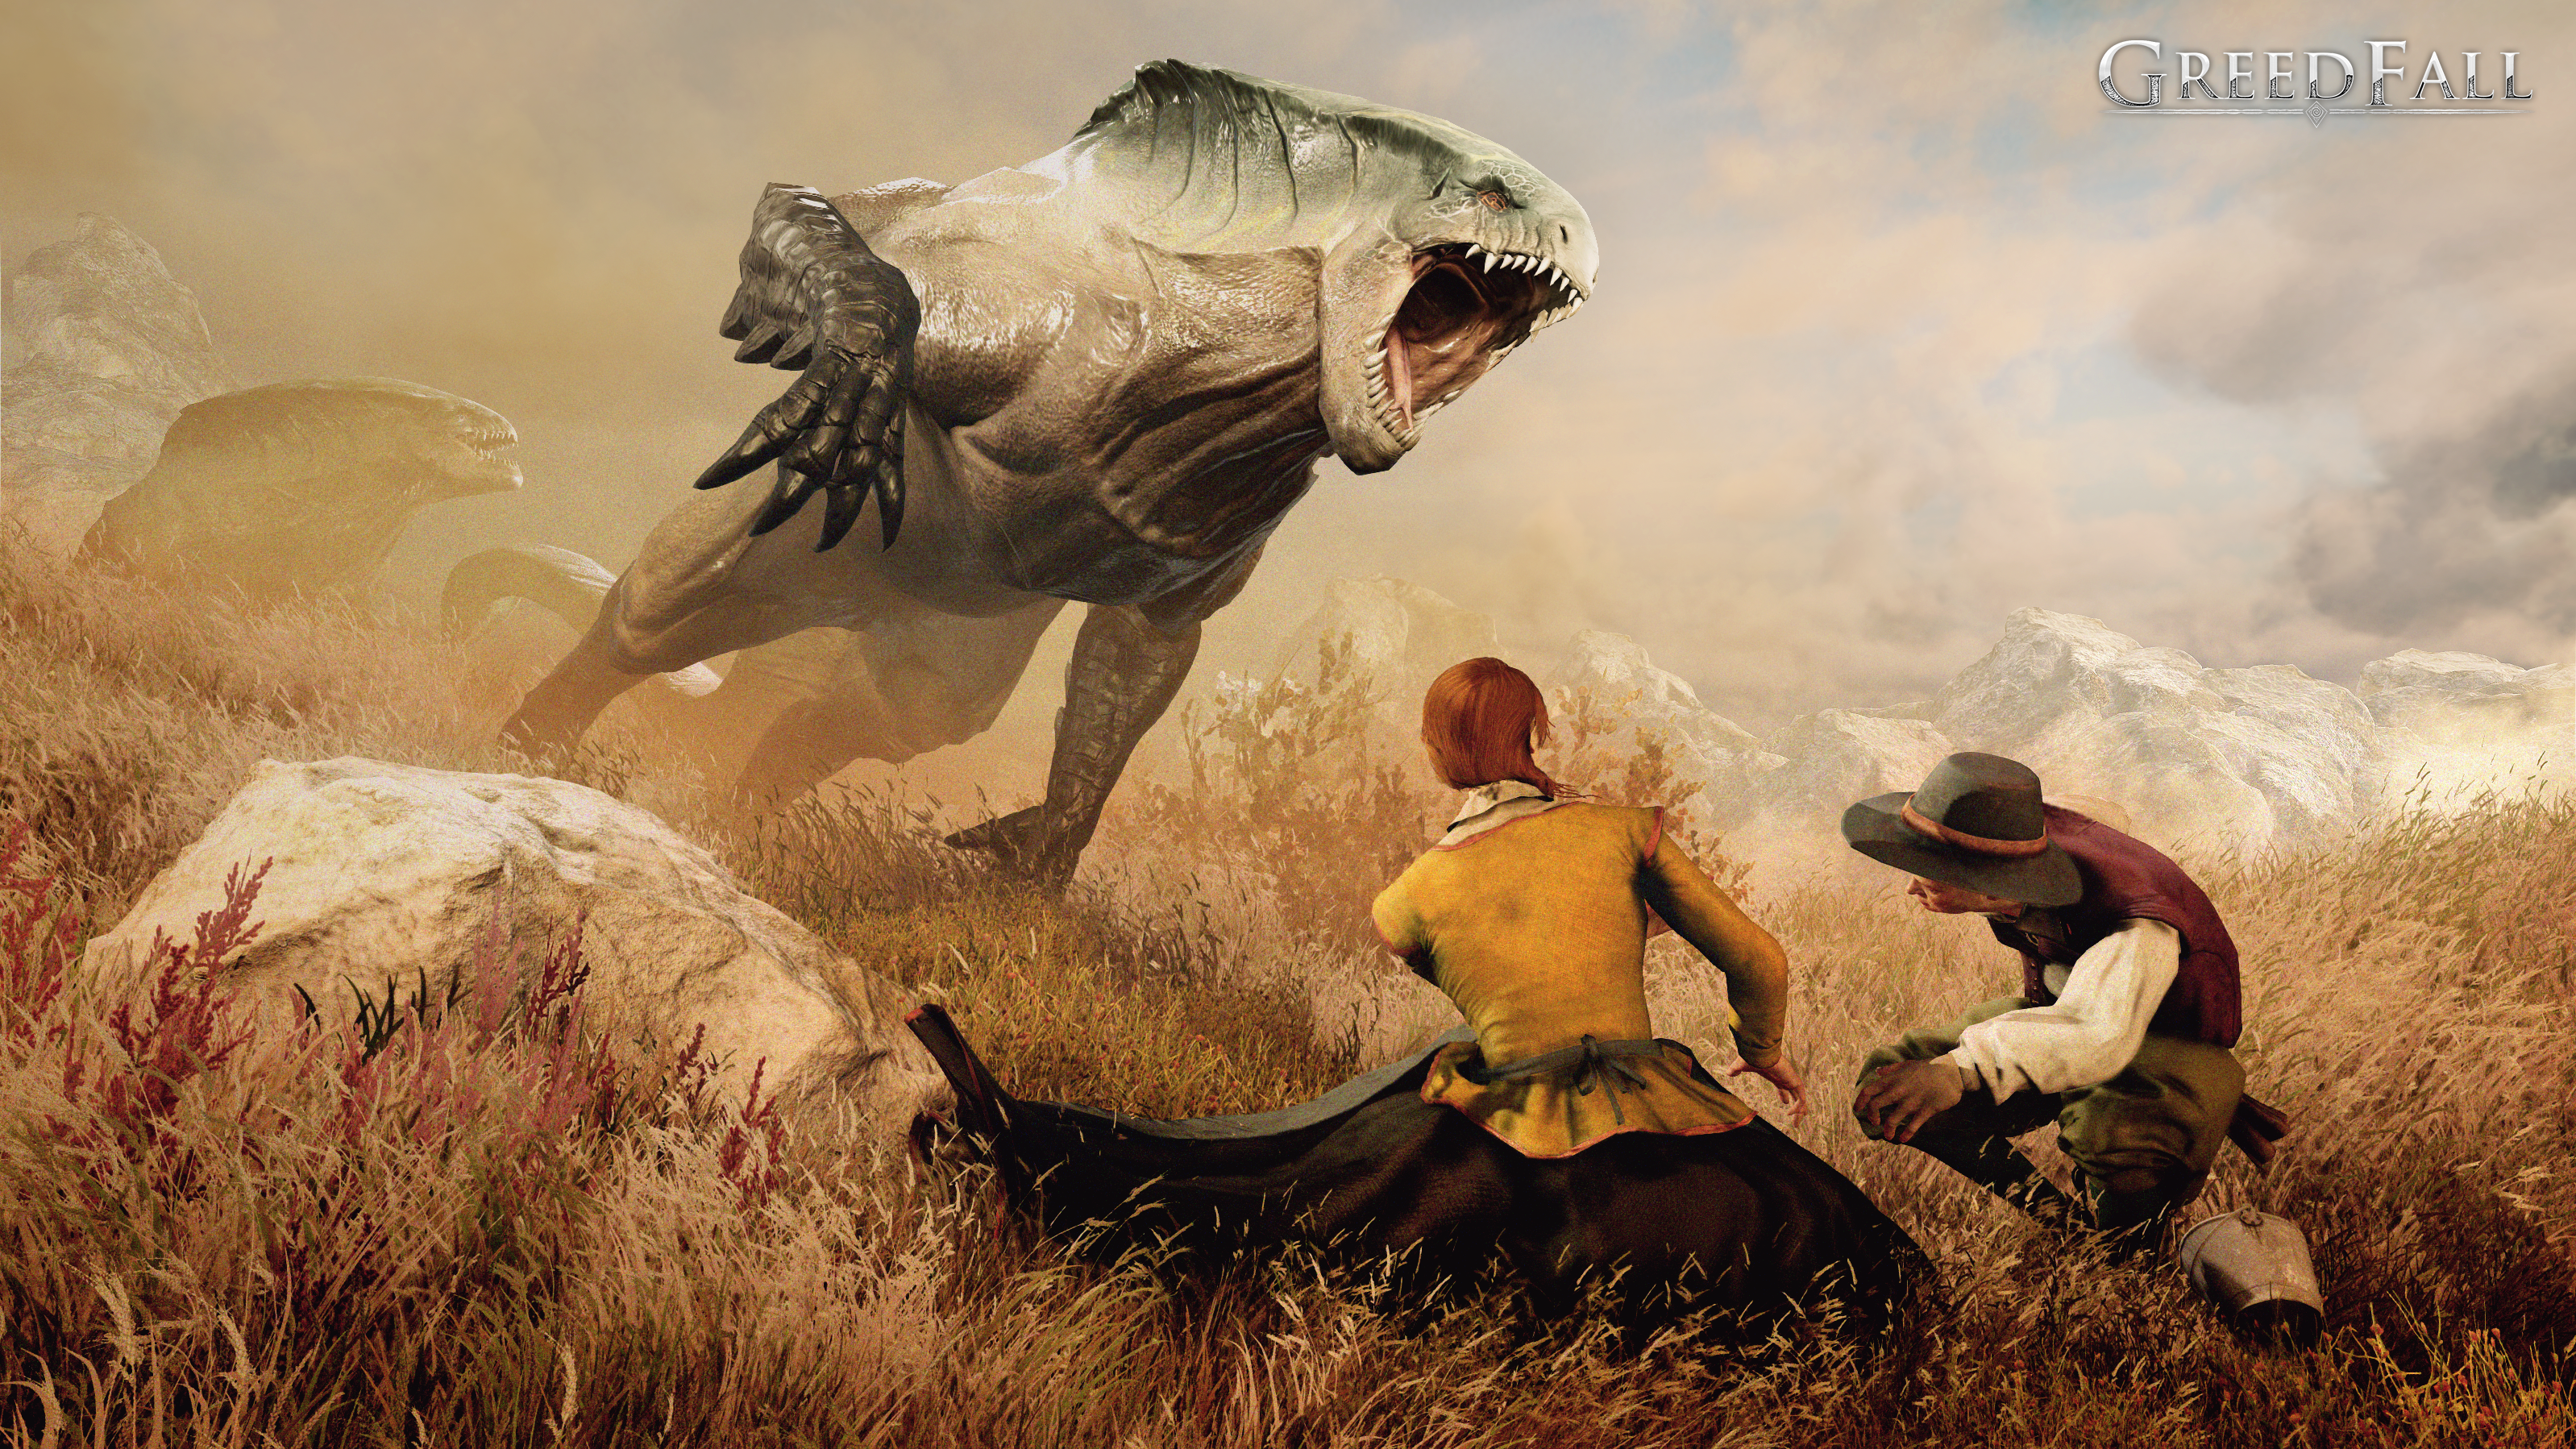 Greedfall Preview - A Healthy Mix of Assassin's Creed and Dragon Age